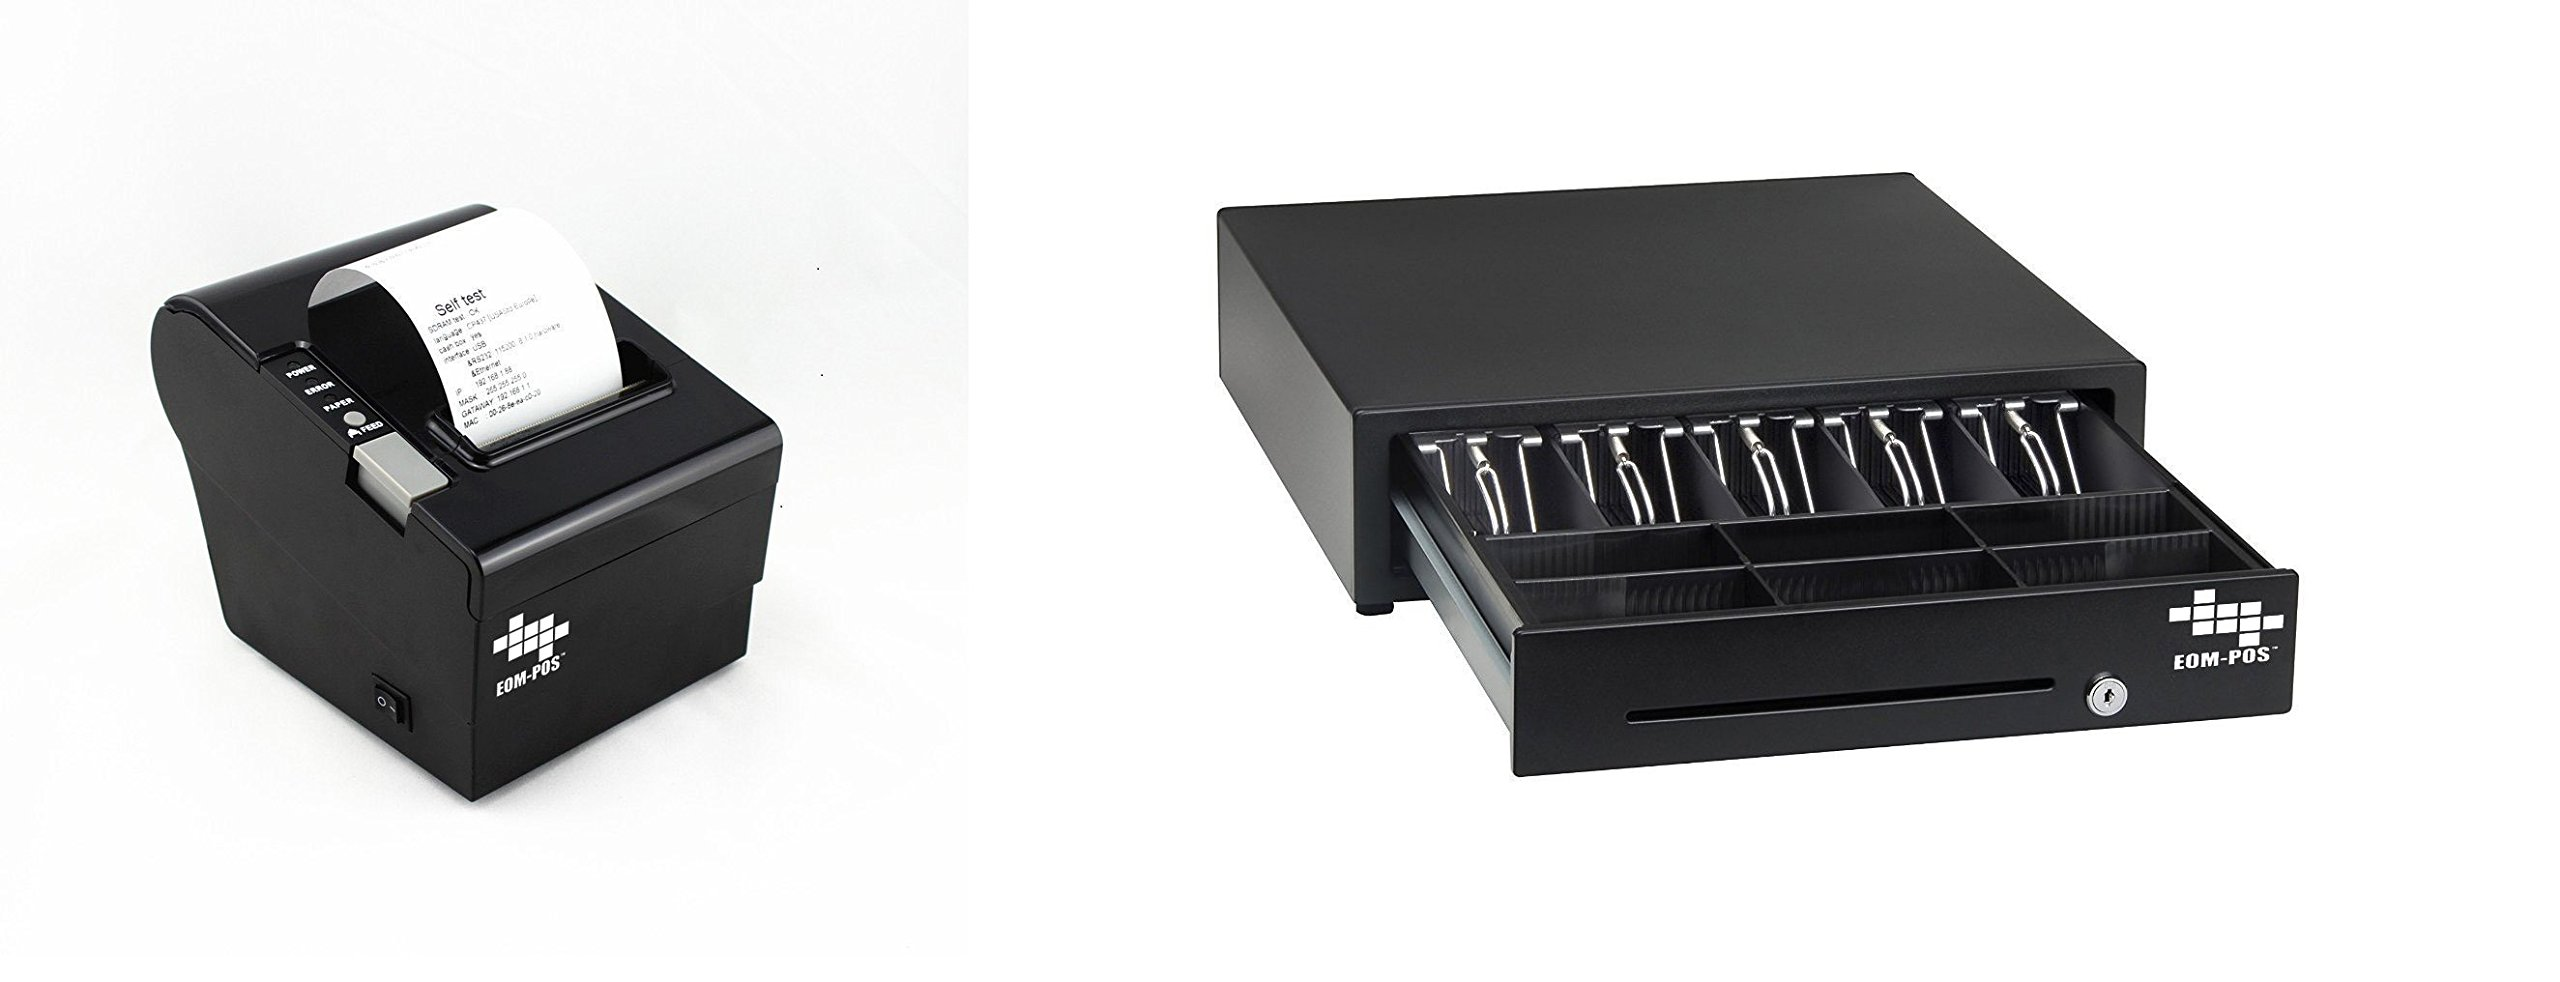 EOM-POS Heavy Duty Cash Register Drawer + Thermal Receipt Printer NOT COMPATIBLE WITH SQUARE OR CLOVER